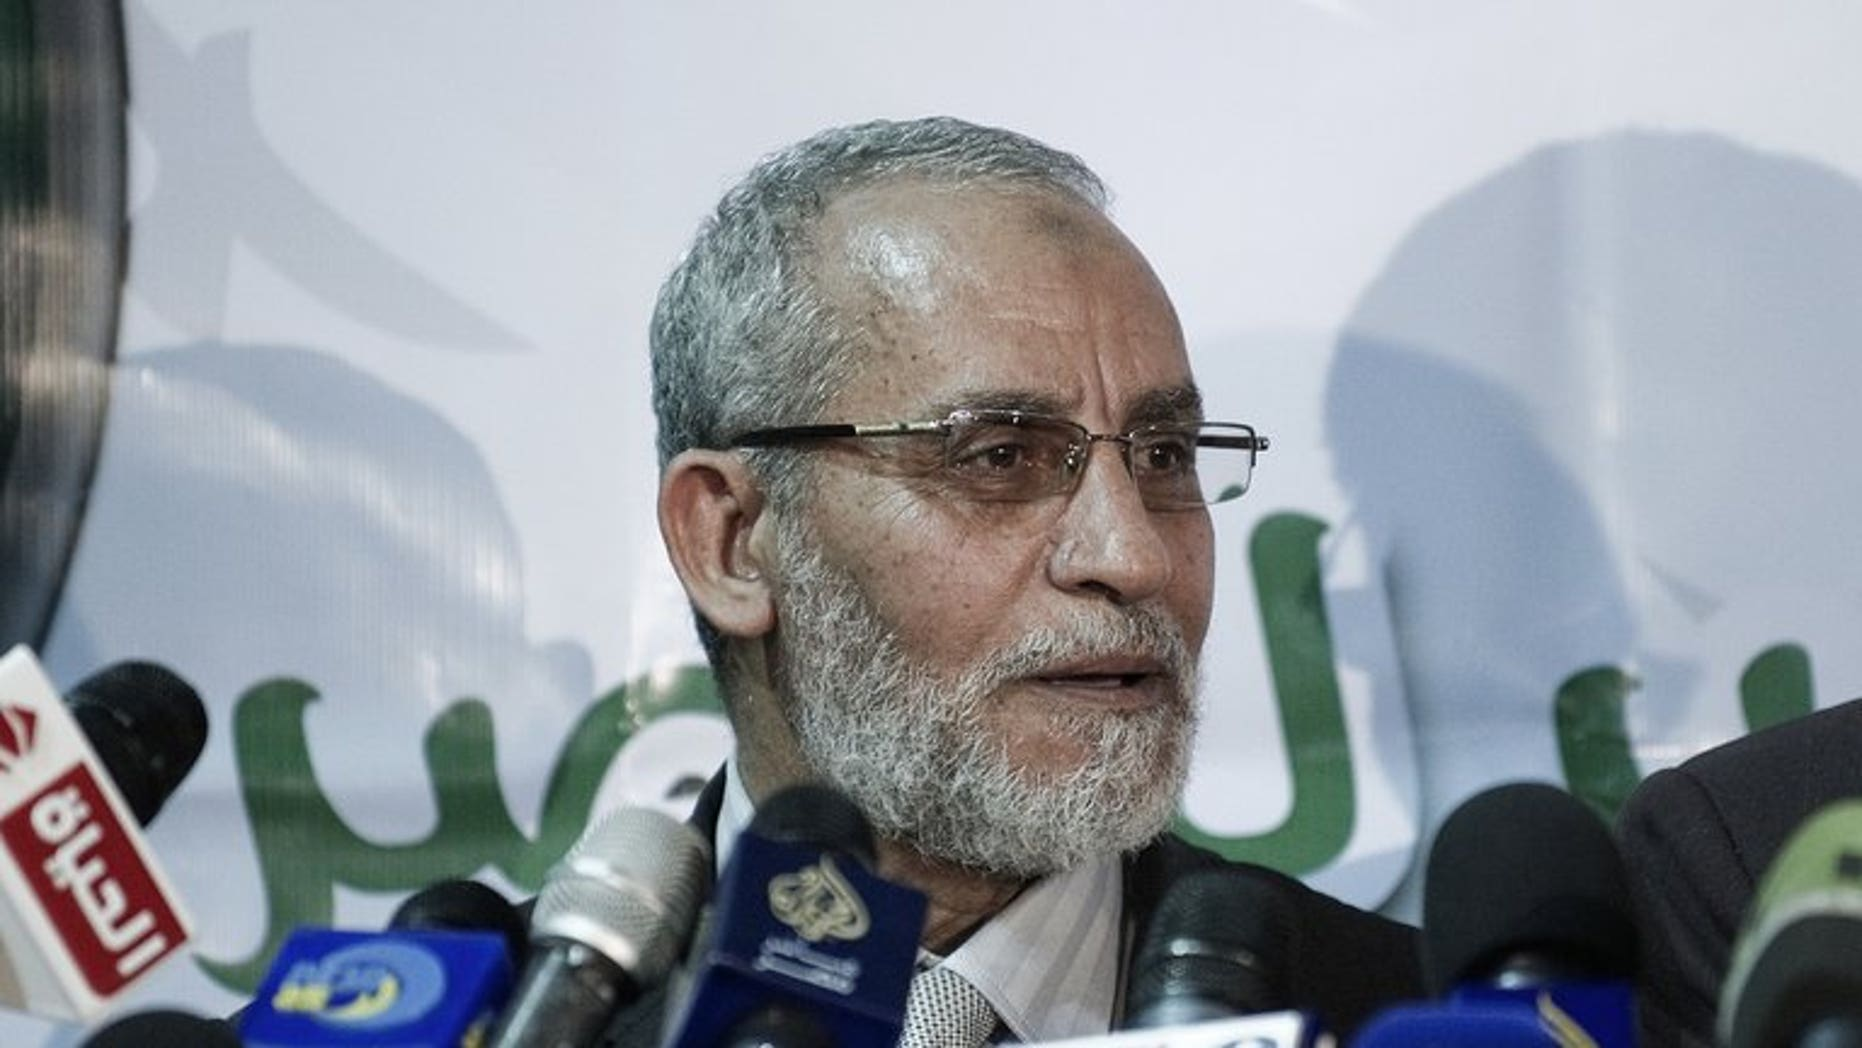 Mohamed Badie, Egypt's Muslim brotherhood leader, gives a press conference in Cairo, on March 31, 2012. Badie has been arrested in Cairo, Egyptian officials confirmed on Tuesday. The arrest came as authorities pursued a crackdown on the Brotherhood, the party of ousted president Mohamed Morsi, which has sparked deadly protests and international condemnation.